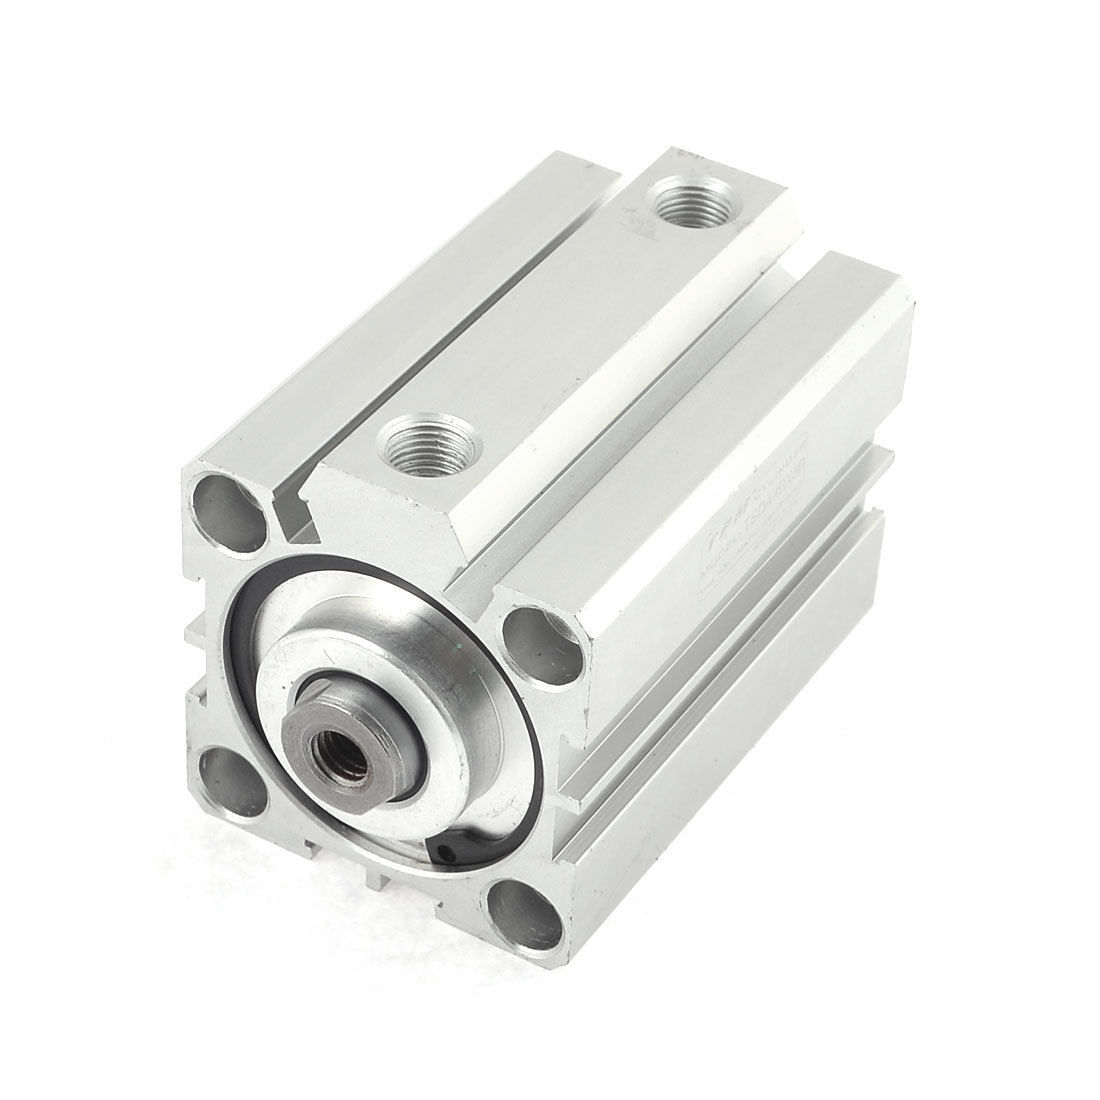 1 Pcs 40mm Bore 40mm Stroke Stainless steel Pneumatic Air Cylinder SDA40-40